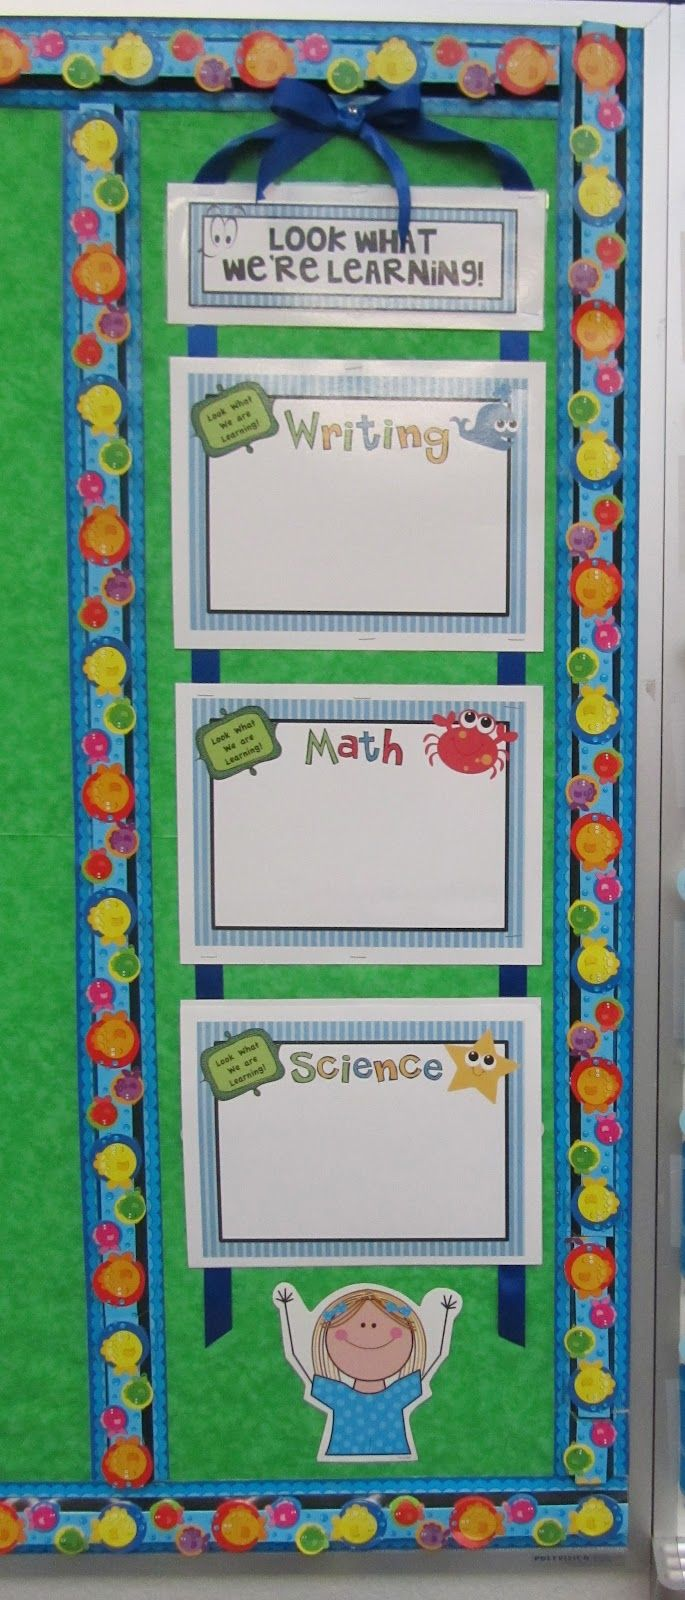 display learning targets. This might actually work!